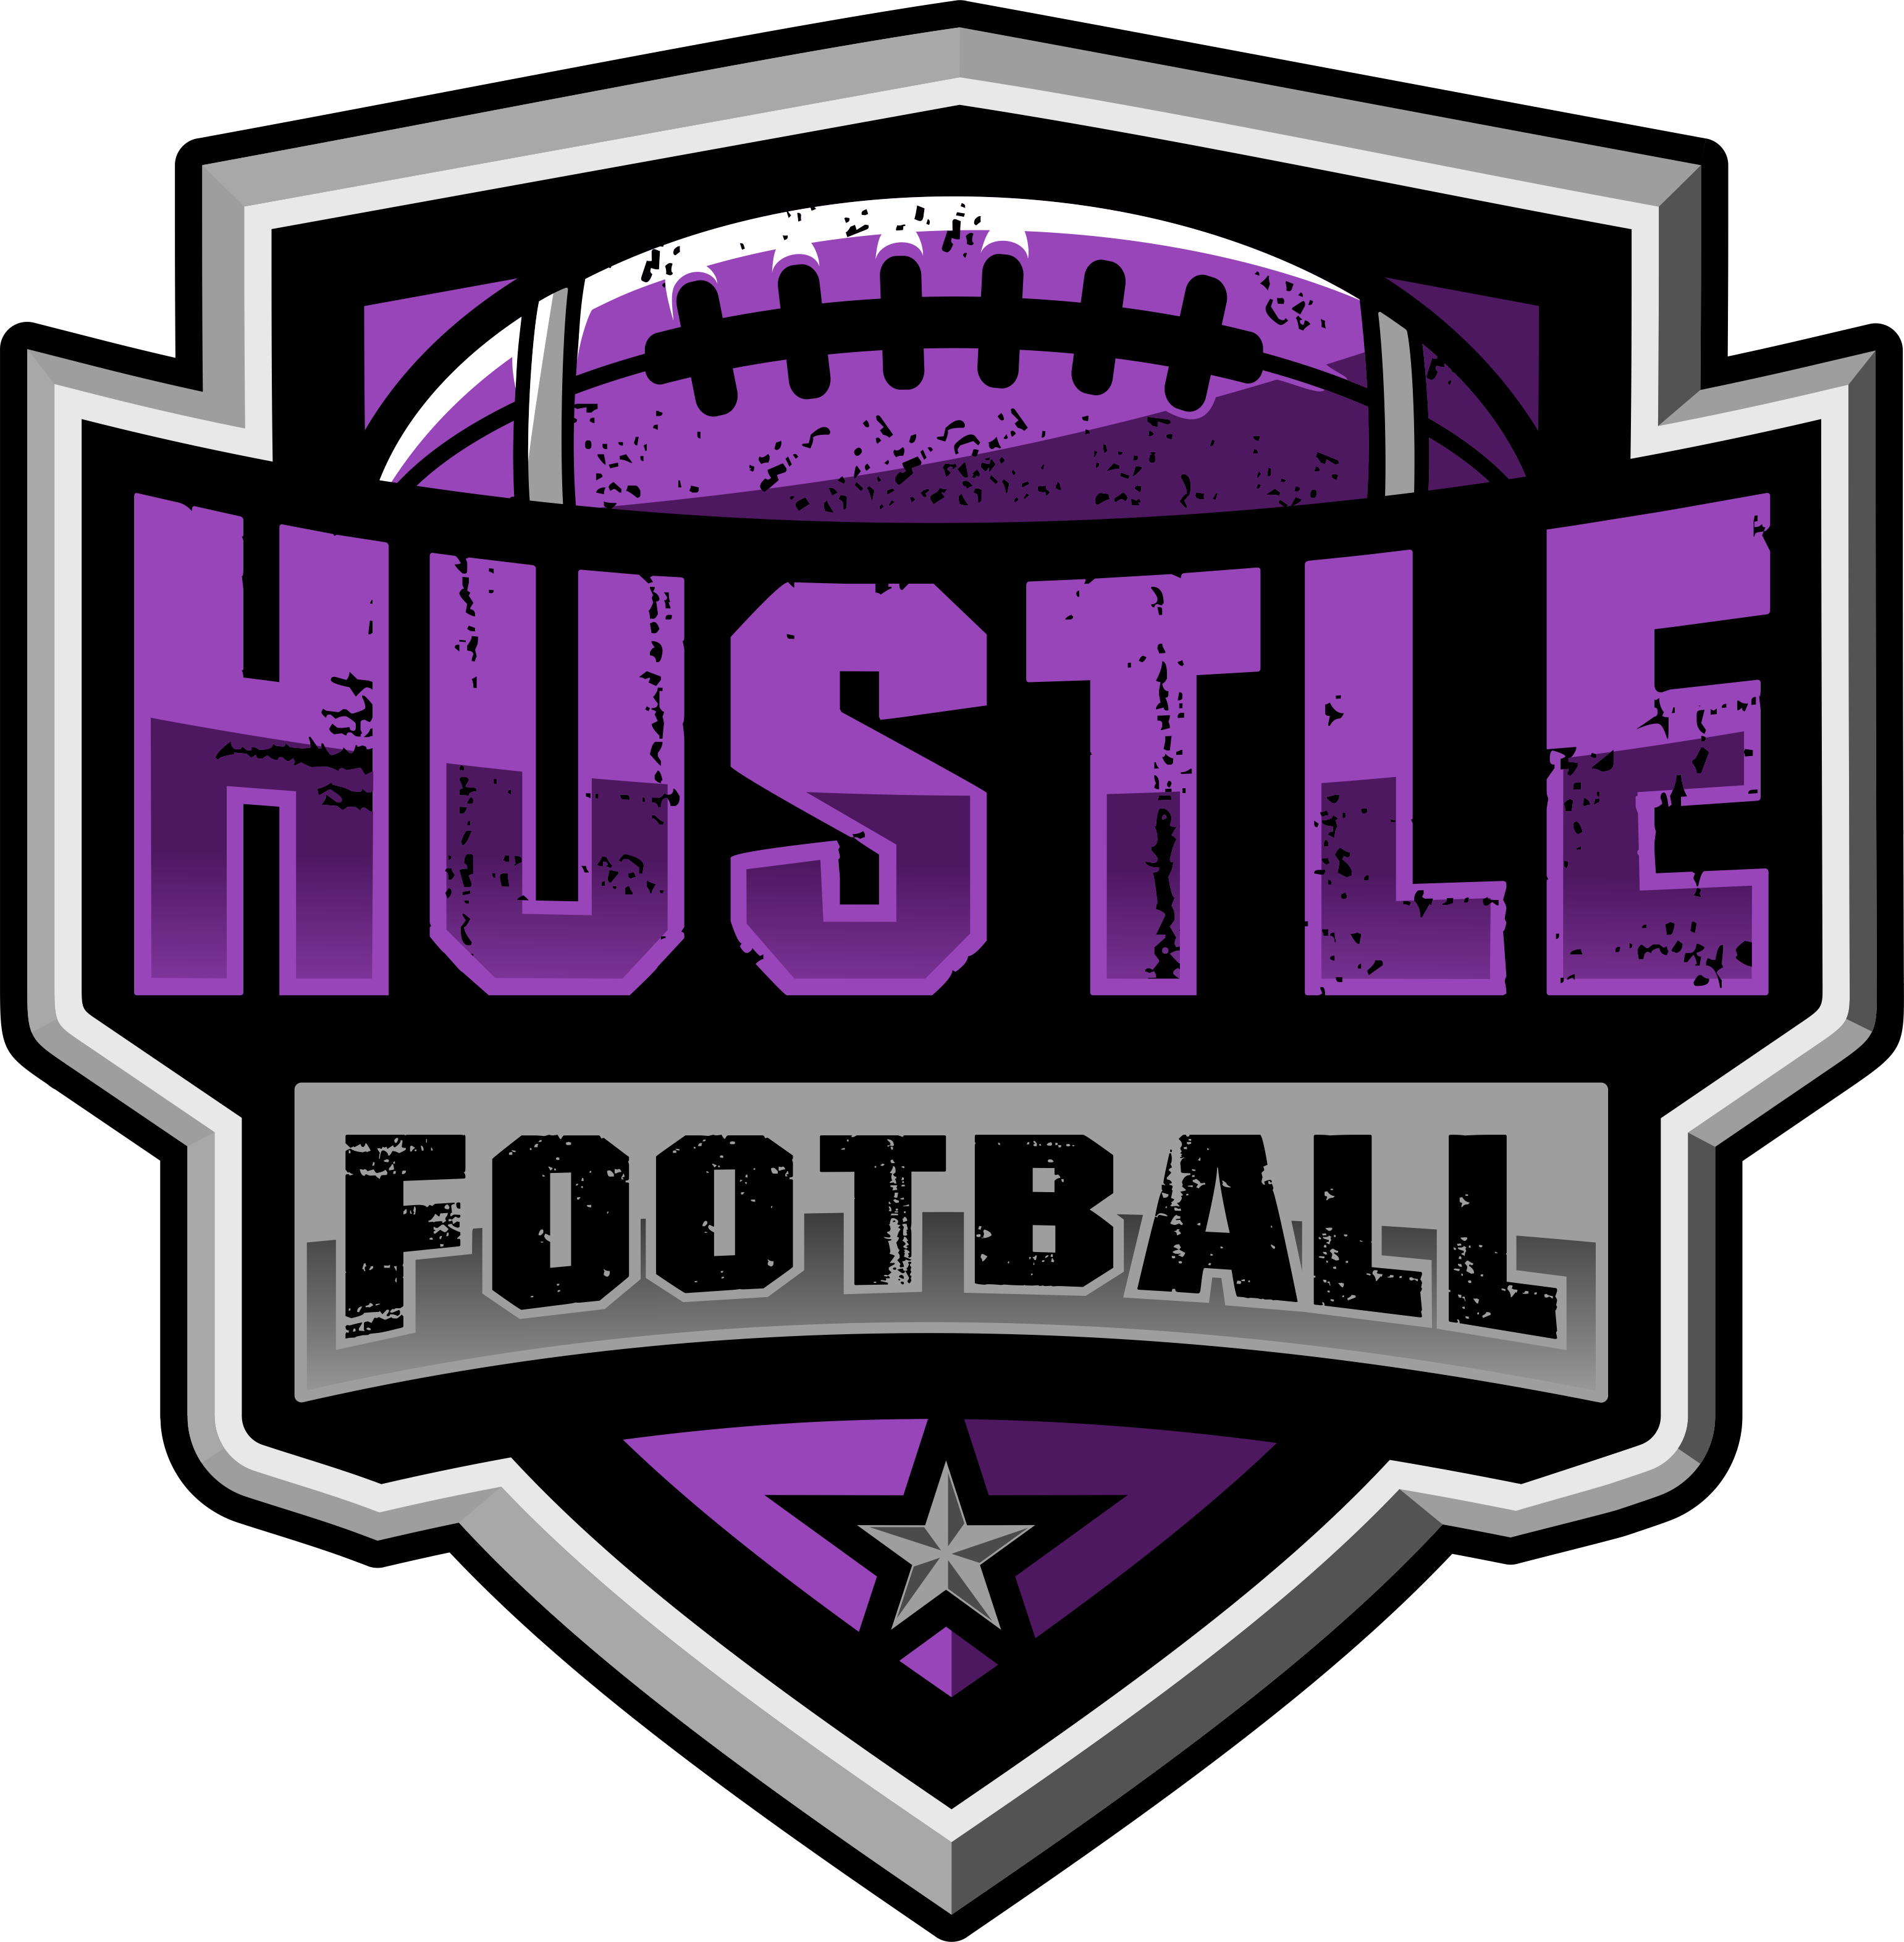 Create a powerful youth football team logo for young athletes.